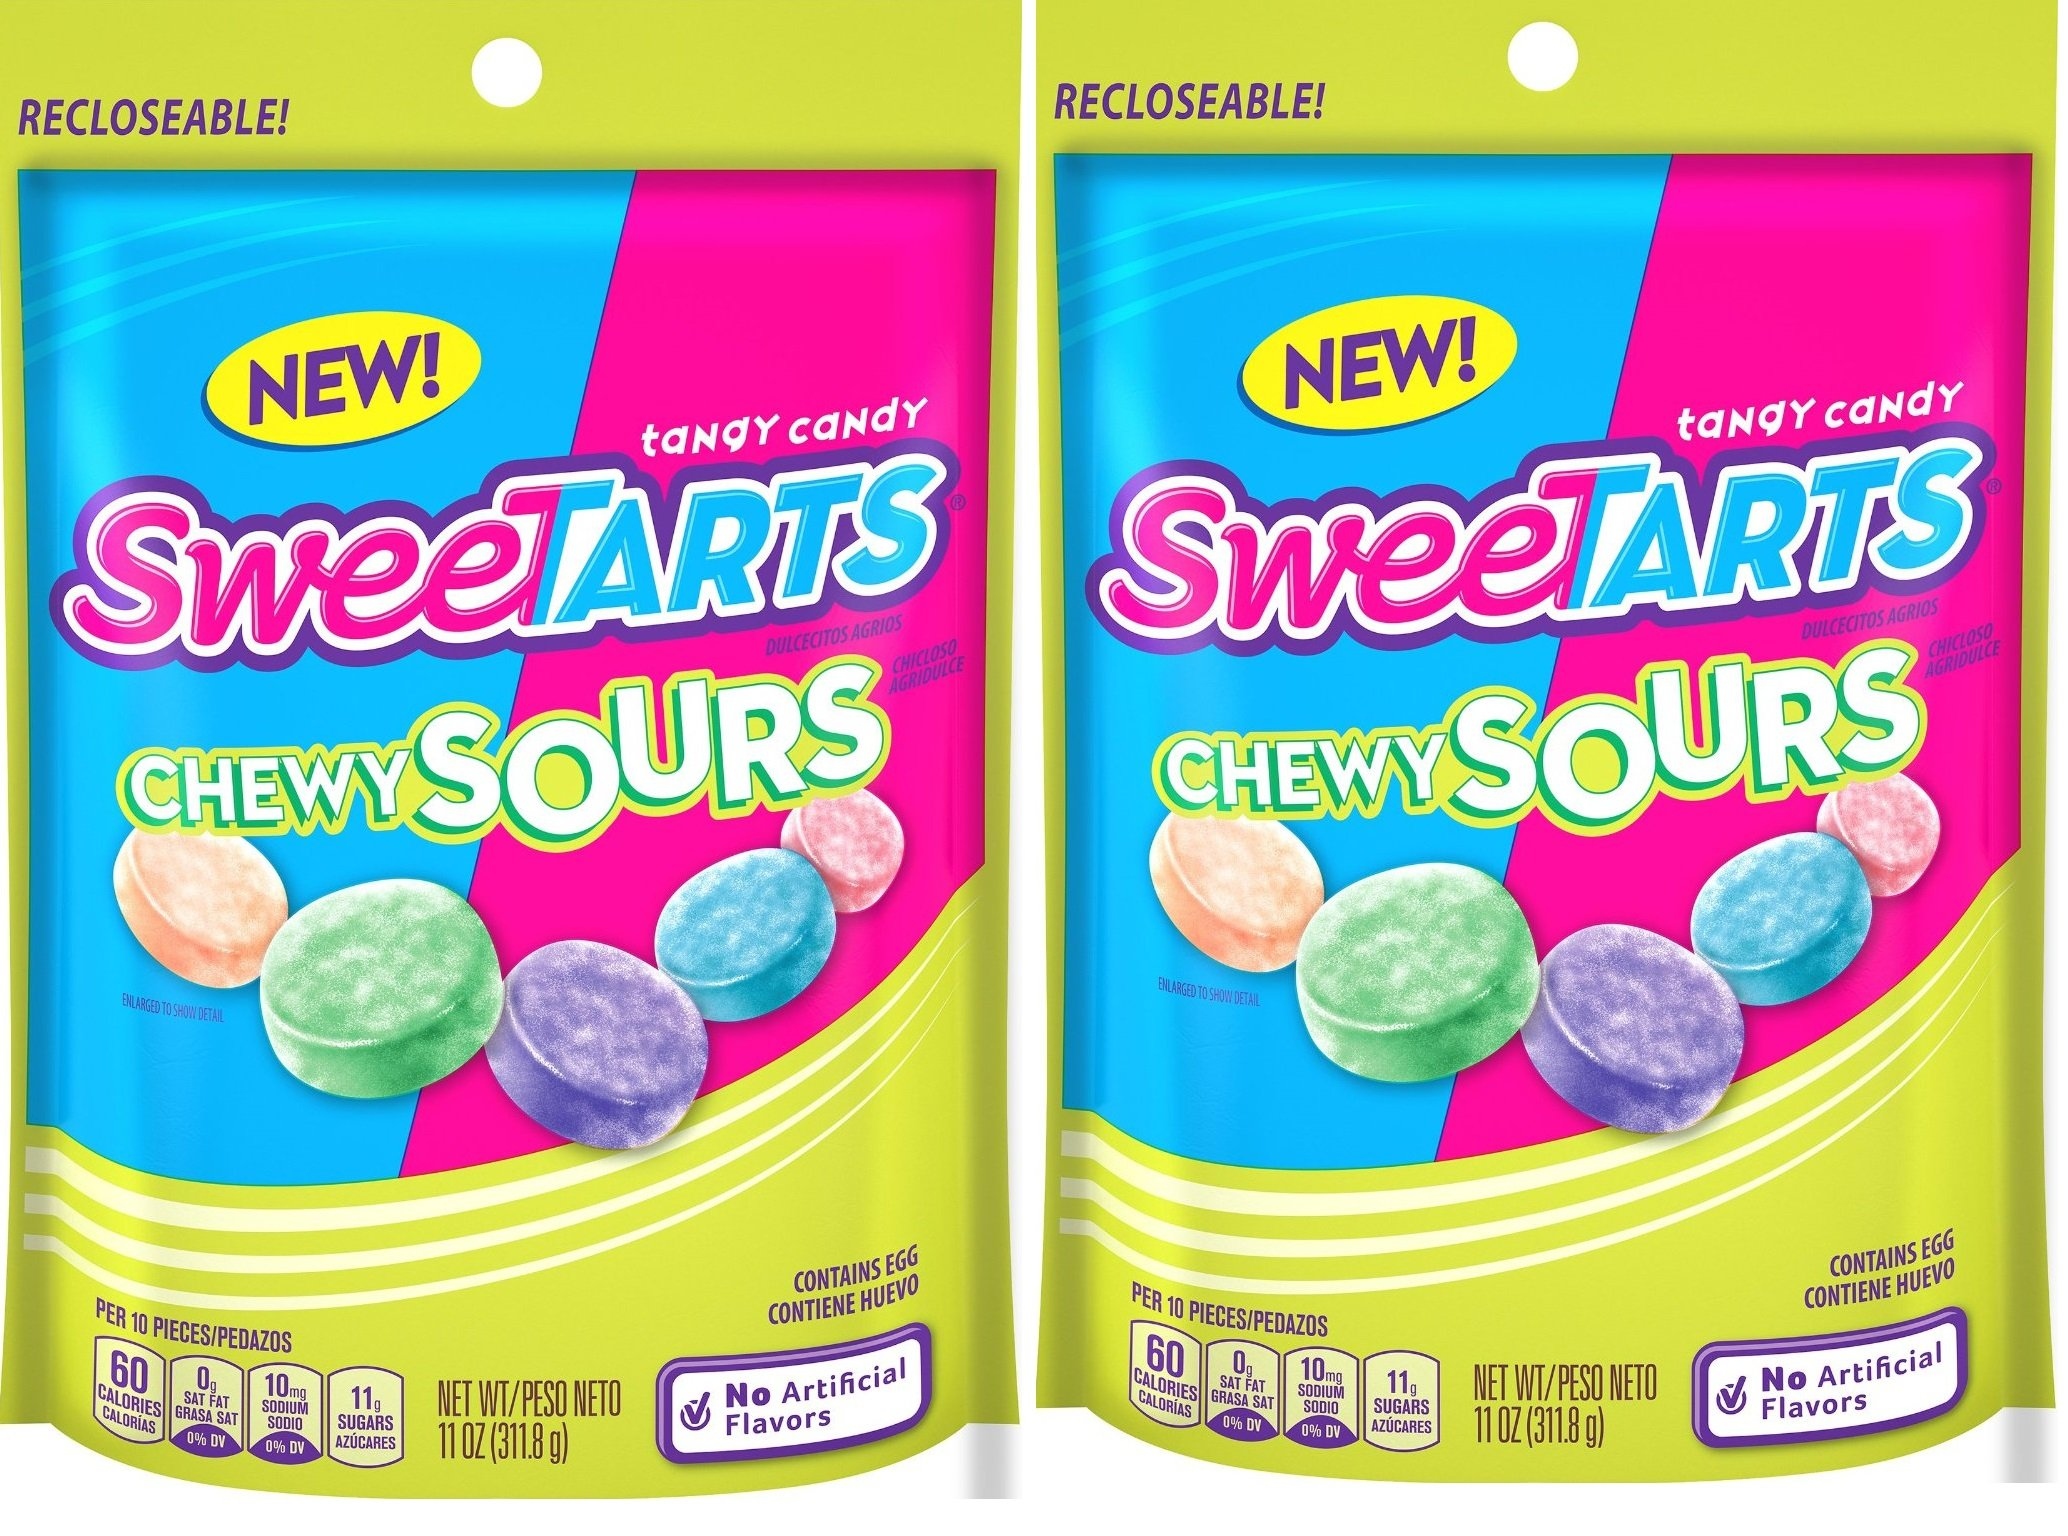 SweeTARTS Chewy Sours Resealable Bag (2 Pack), 11 Ounces each by SweeTARTS